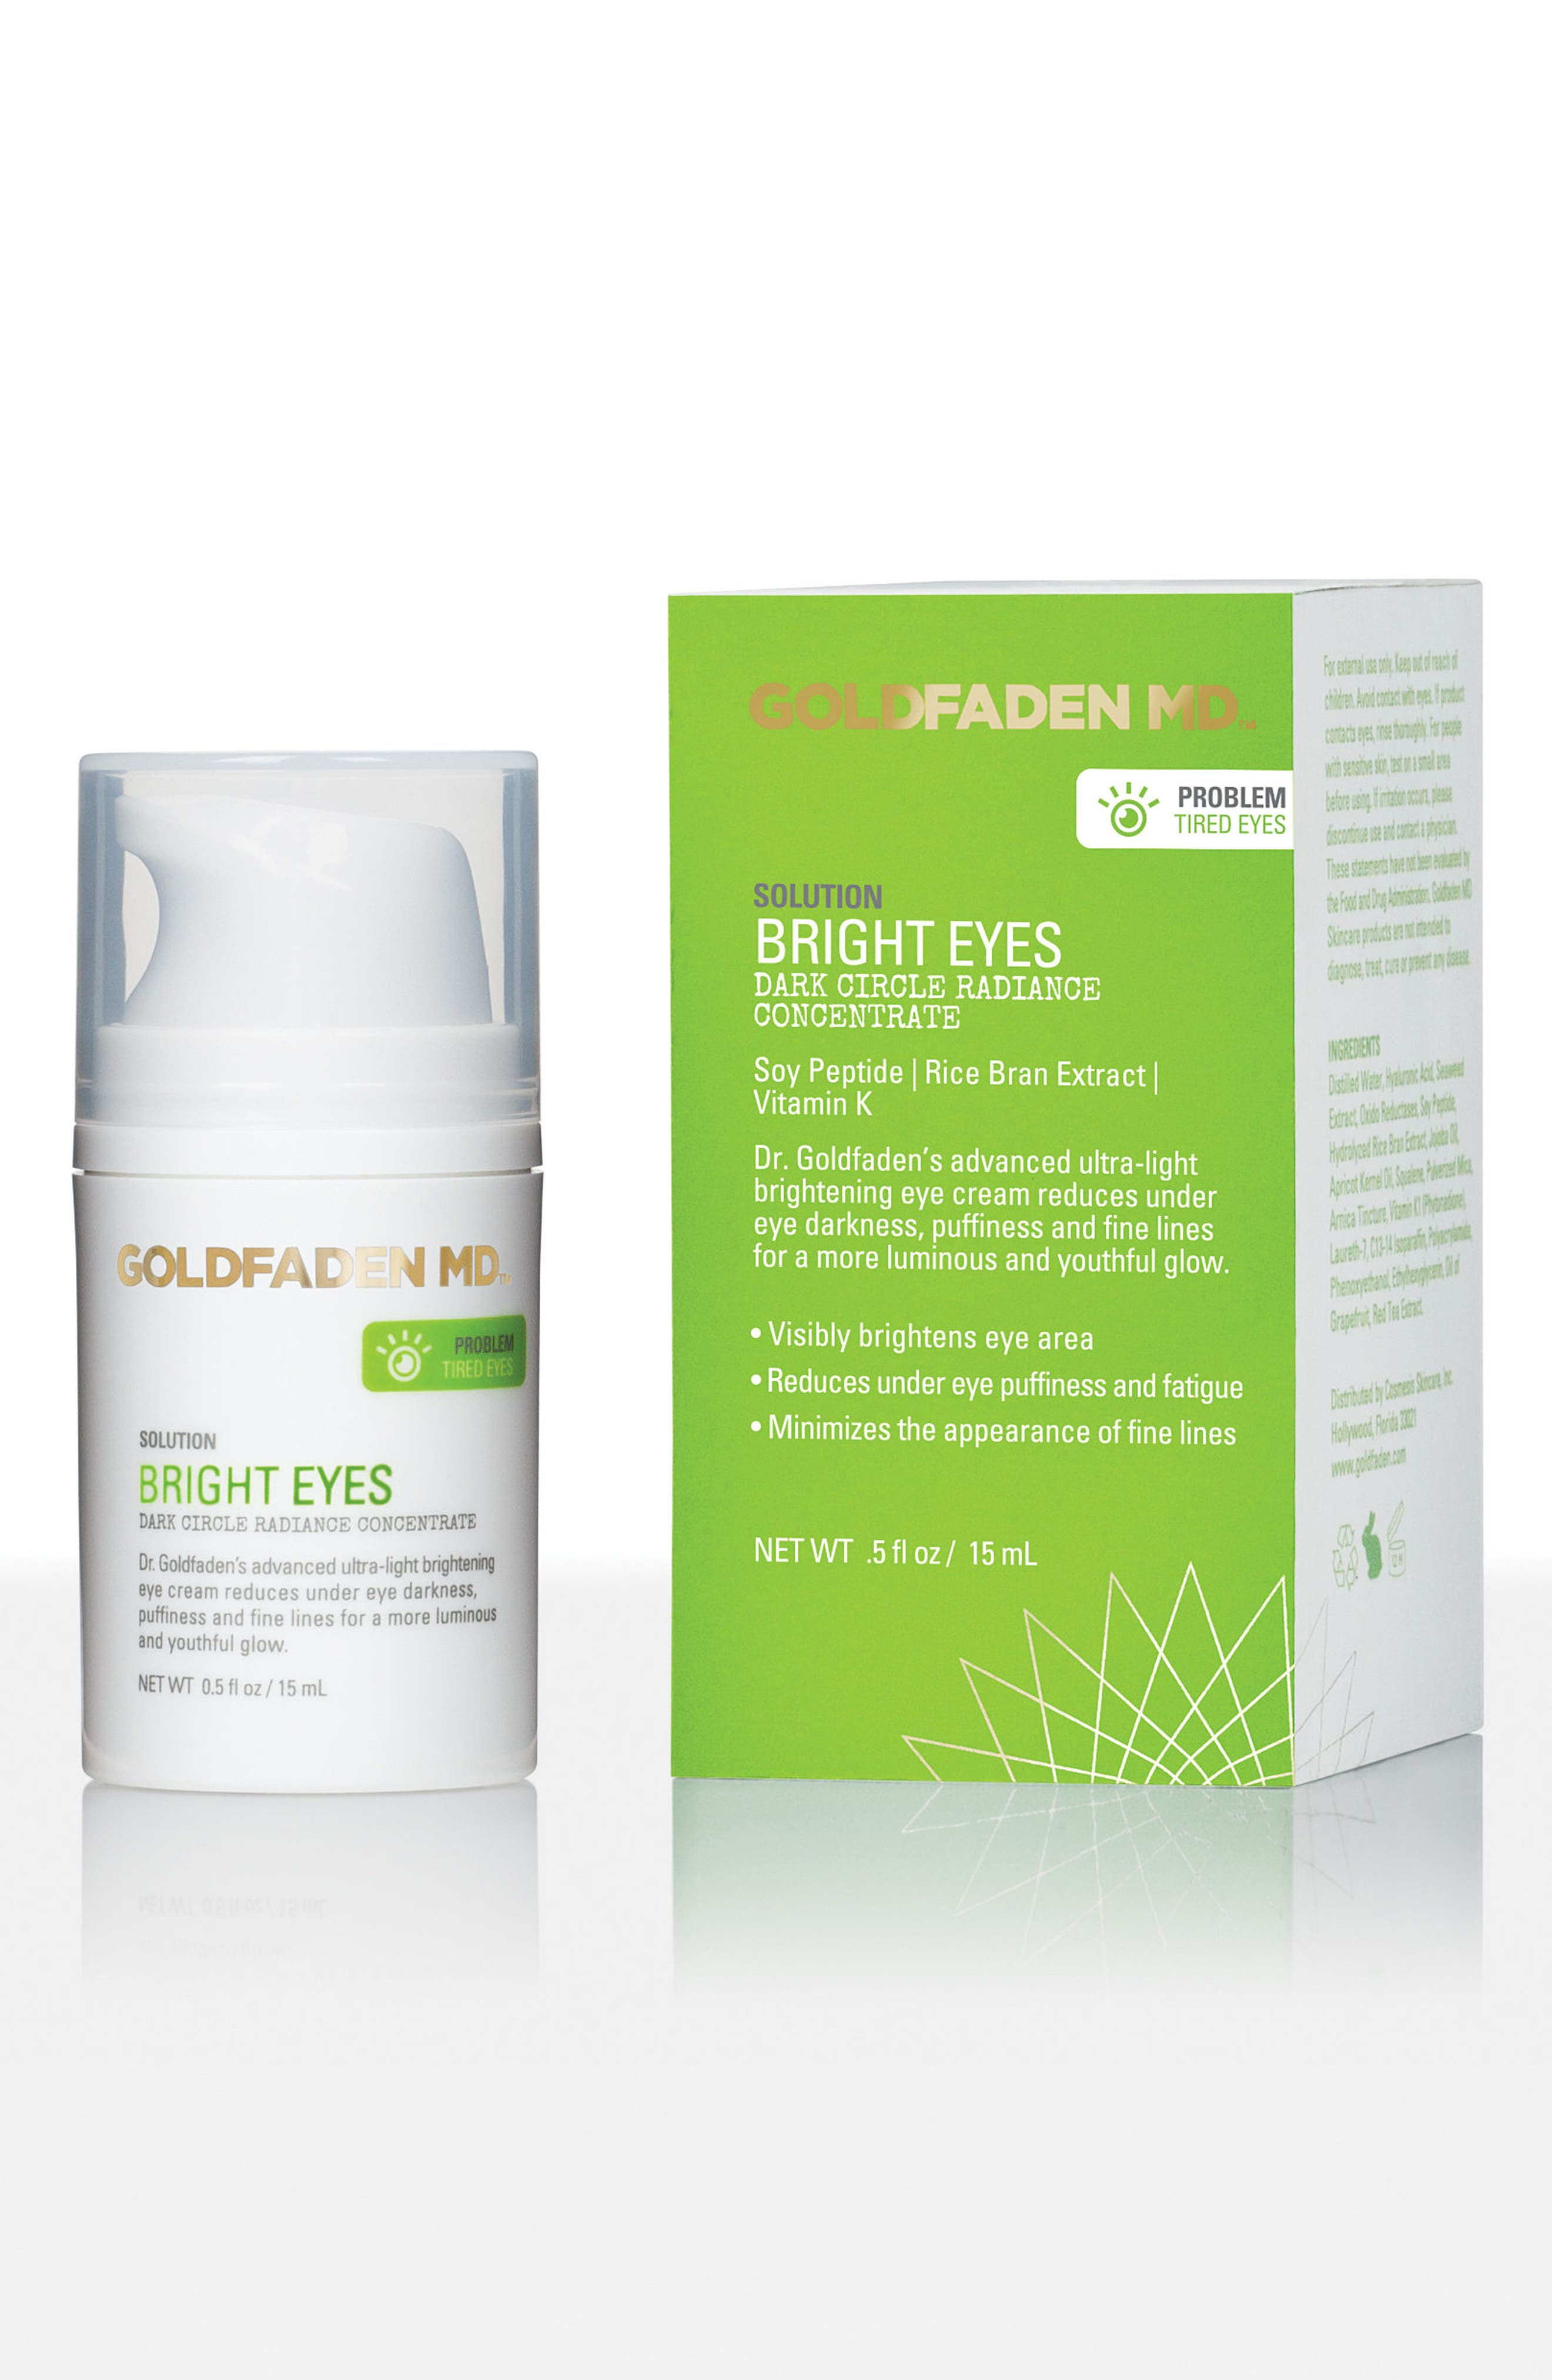 Alternate Image 1 Selected - SPACE.NK.apothecary Goldfaden MD Bright Eyes Dark Circle Radiance Concentrate